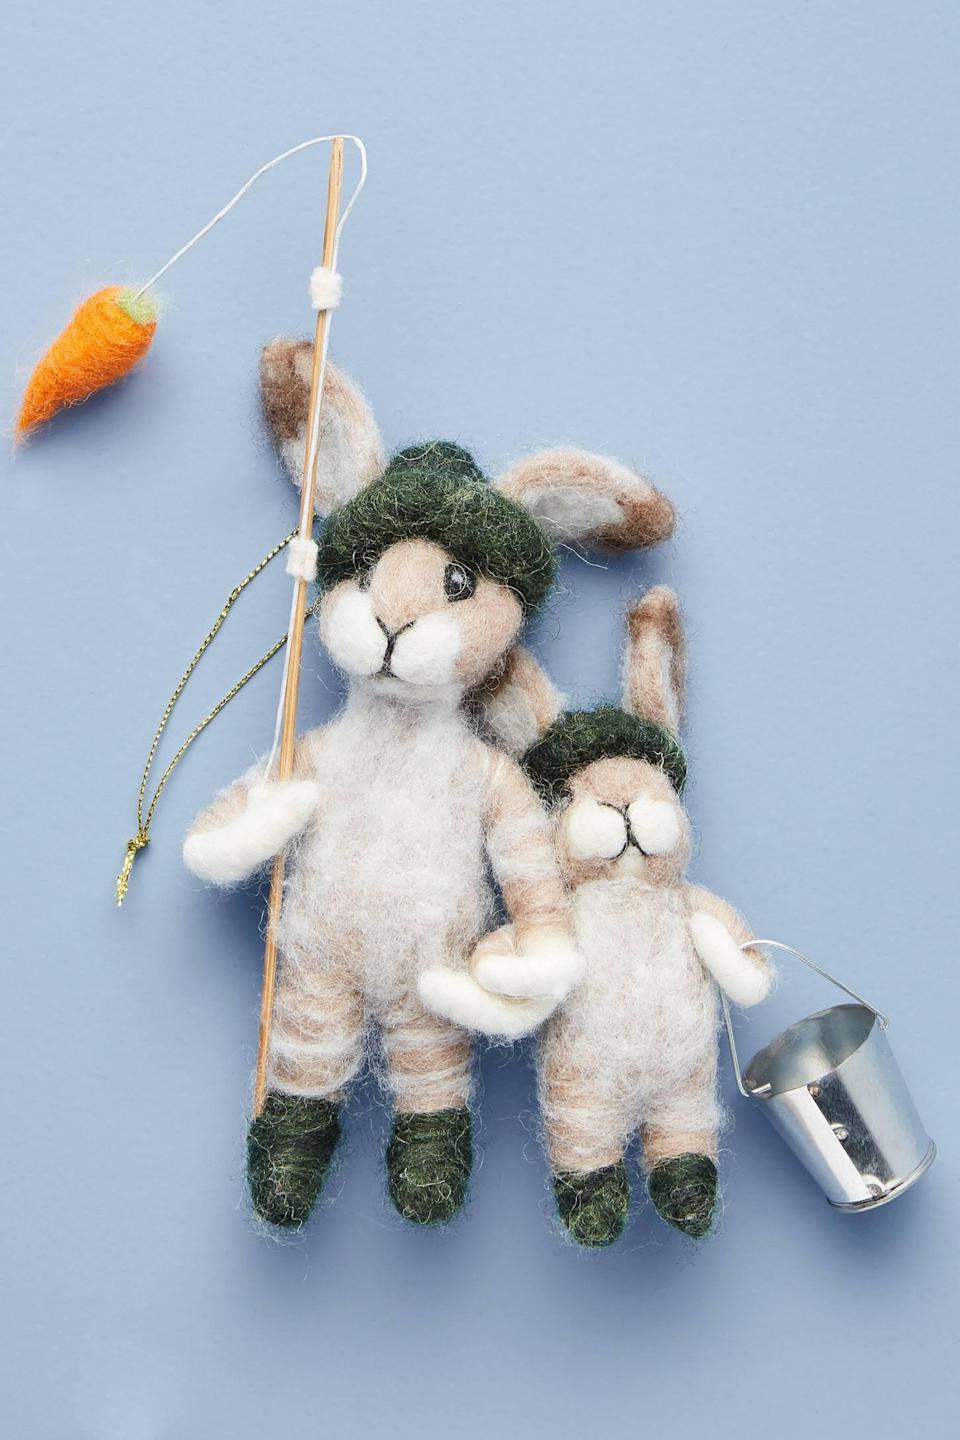 """<p>A great gift to give a dad, the <a href=""""https://www.popsugar.com/buy/Artemis-Fibre-Art-Fishing-Carrots-Ornament-490541?p_name=Artemis%20Fibre%20Art%20Fishing%20For%20Carrots%20Ornament&retailer=anthropologie.com&pid=490541&price=28&evar1=casa%3Aus&evar9=46615300&evar98=https%3A%2F%2Fwww.popsugar.com%2Fhome%2Fphoto-gallery%2F46615300%2Fimage%2F46615412%2FArtemis-Fibre-Art-Fishing-For-Carrots-Ornament&list1=shopping%2Canthropologie%2Choliday%2Cchristmas%2Cchristmas%20decorations%2Choliday%20decor%2Chome%20shopping&prop13=mobile&pdata=1"""" rel=""""nofollow noopener"""" class=""""link rapid-noclick-resp"""" target=""""_blank"""" data-ylk=""""slk:Artemis Fibre Art Fishing For Carrots Ornament"""">Artemis Fibre Art Fishing For Carrots Ornament</a> ($28) is a decoration to cherish. </p>"""